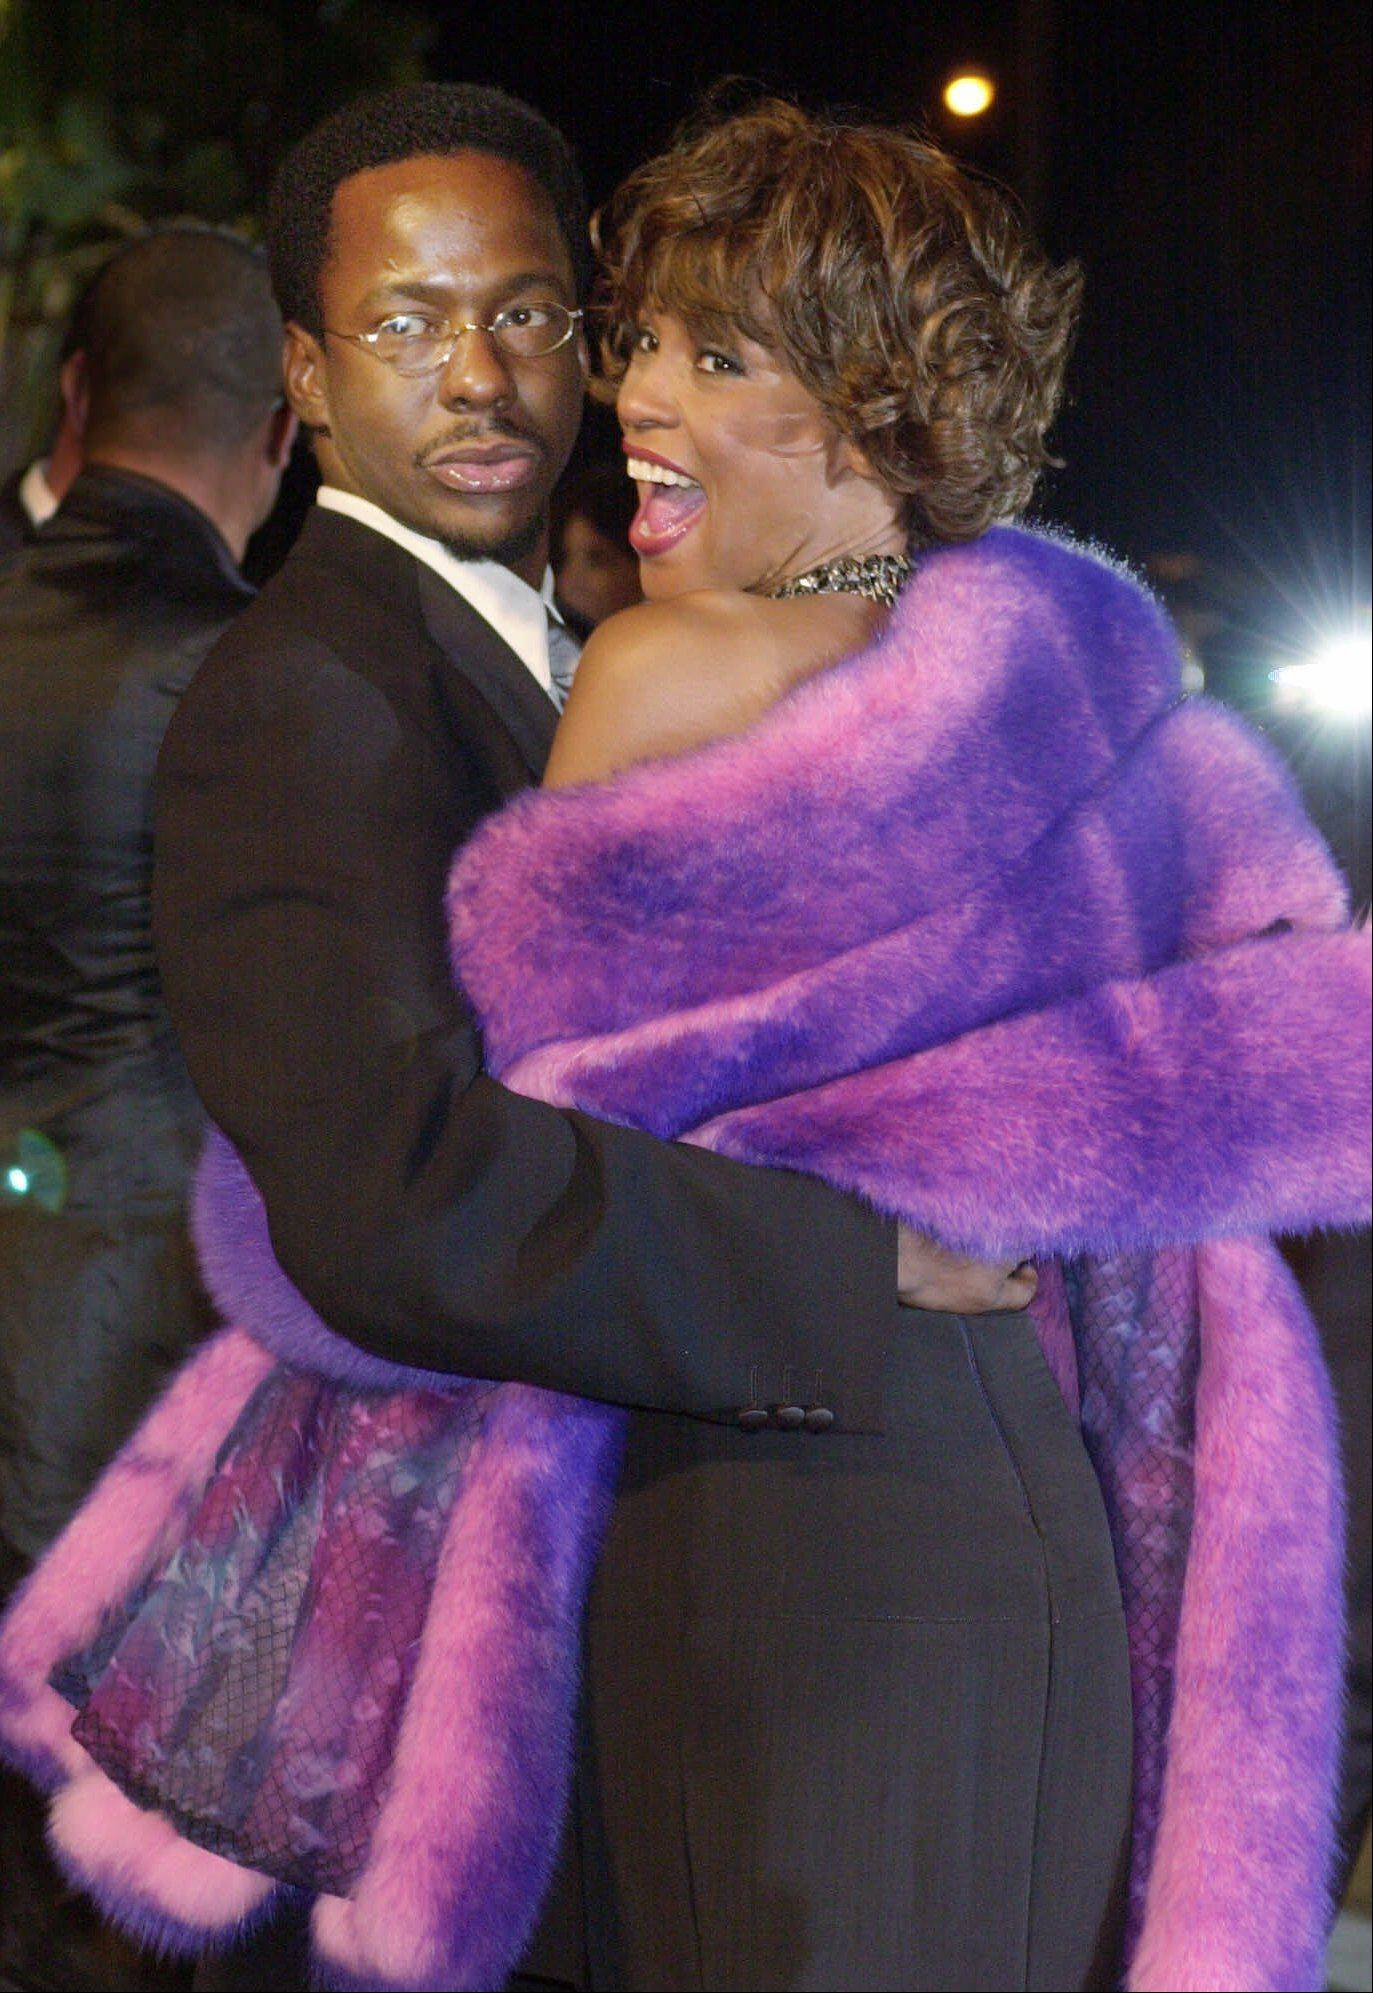 Whitney Houston and then-husband Bobby Brown arrive at Vanity Fair's Oscar party at Morton's in Hollywood in March 2001. During their 14-year marriage, which ended in 2007, Brown was arrested for drugs and alcohol, and Houston twice entered drug rehab programs. Houston even admitted to doing two stints in rehab prior to 2010.